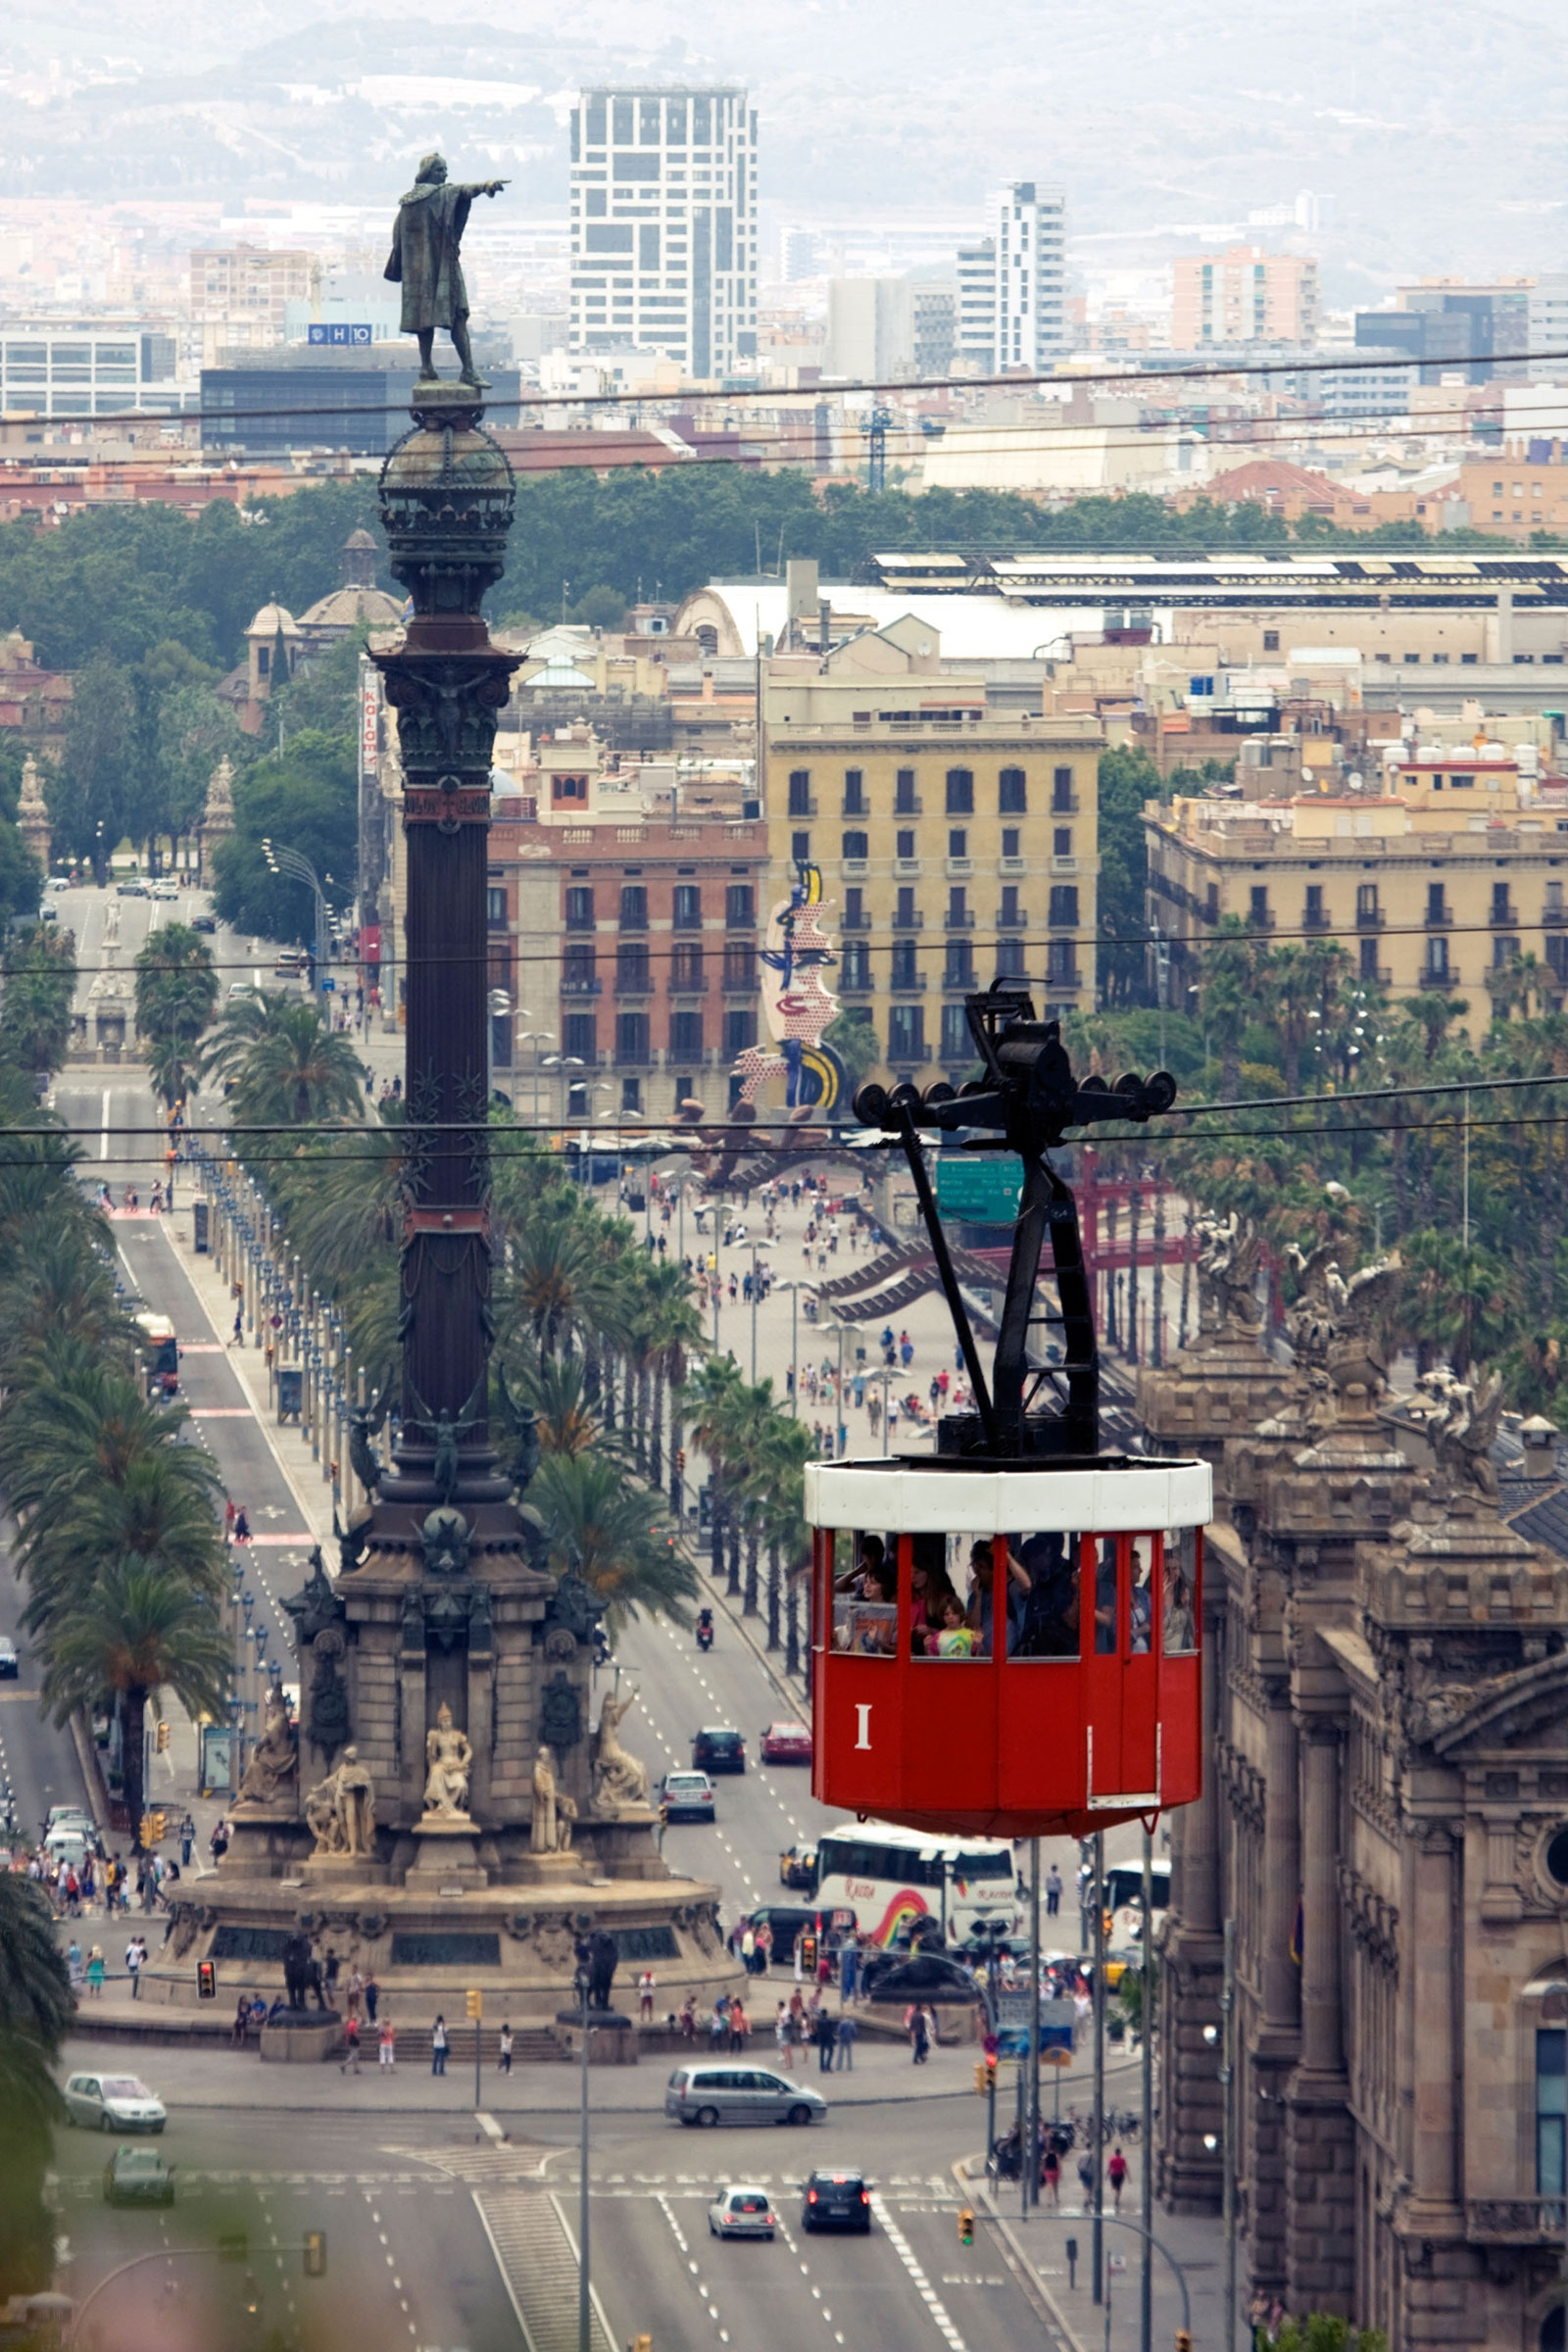 Port Vell Aerial Tramway, Barcelona